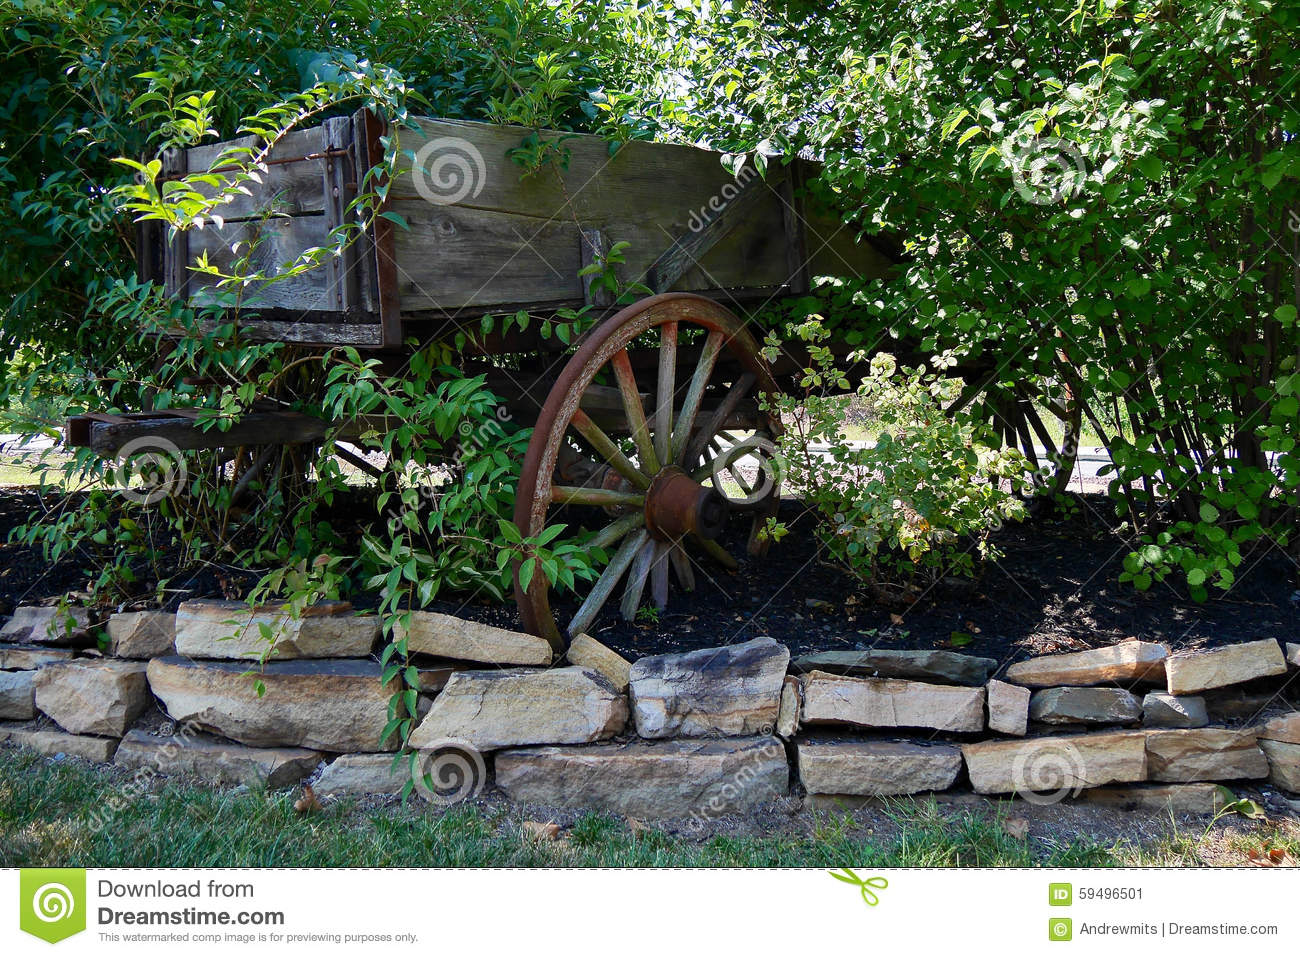 Decorative Garden Cart And Stone Border Stock Image - Image of ...